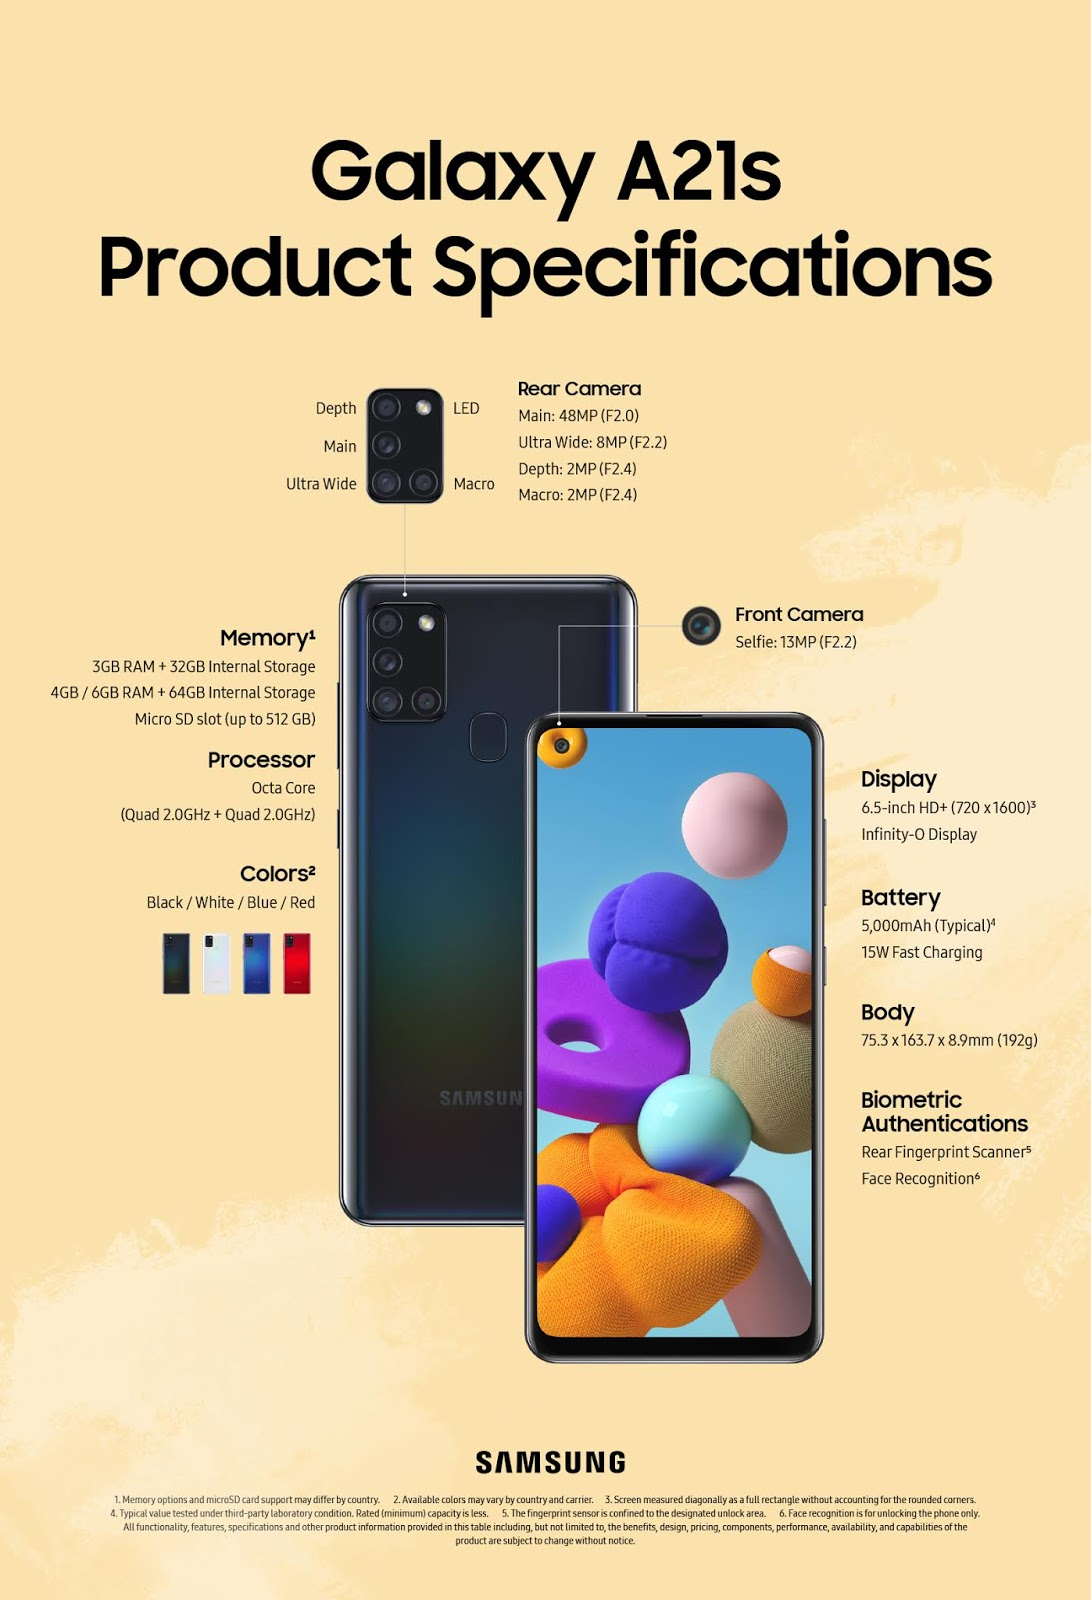 Samsung Galaxy A21s Features Officialy introduced with Android 10